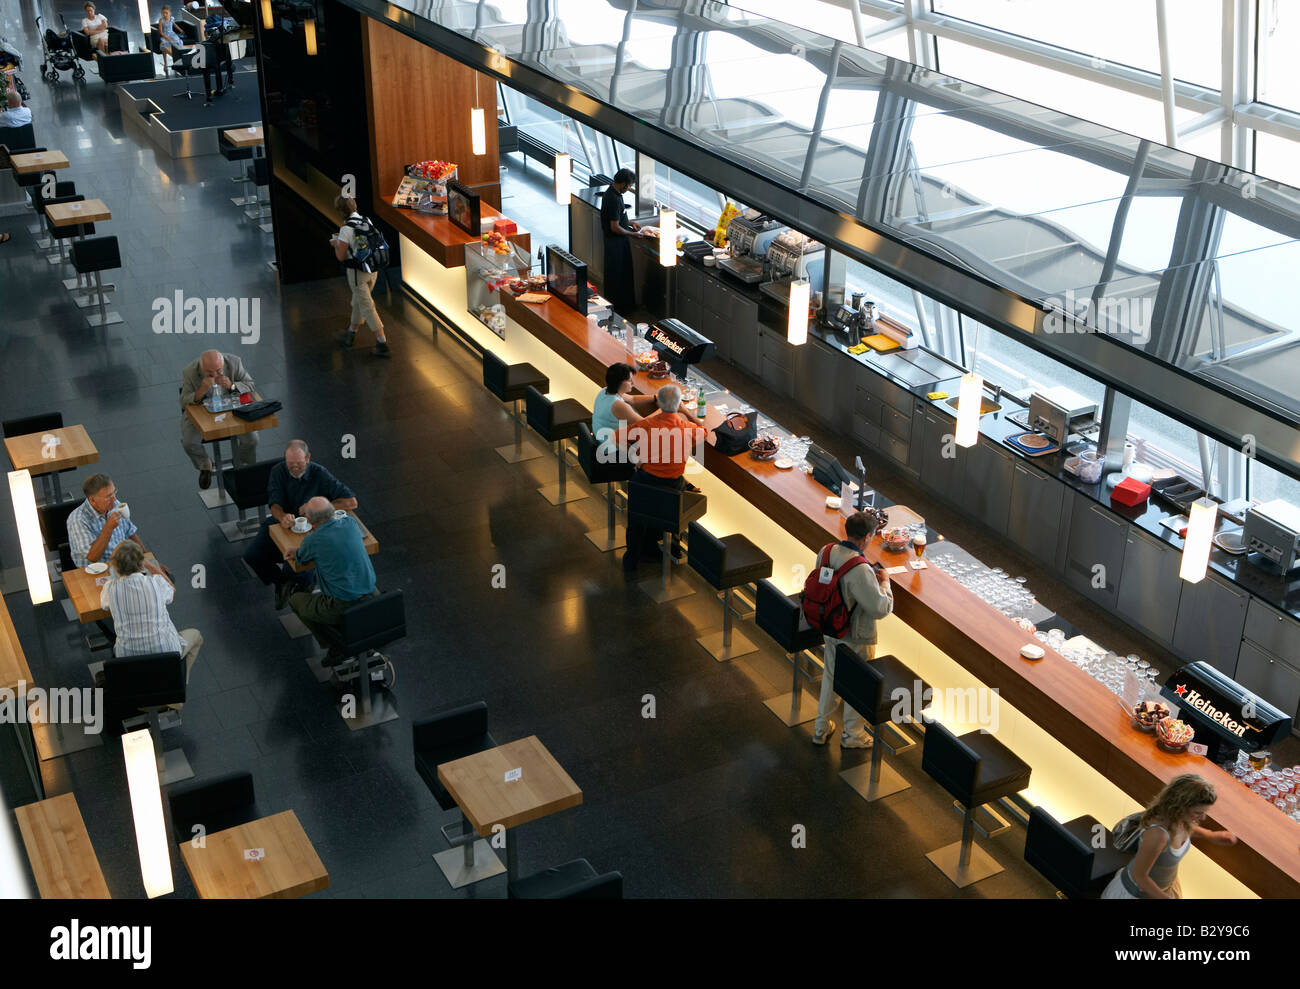 Coffee bar at the Airside Center of the airport in Kloten, Zuerich, Switzerland - Stock Image